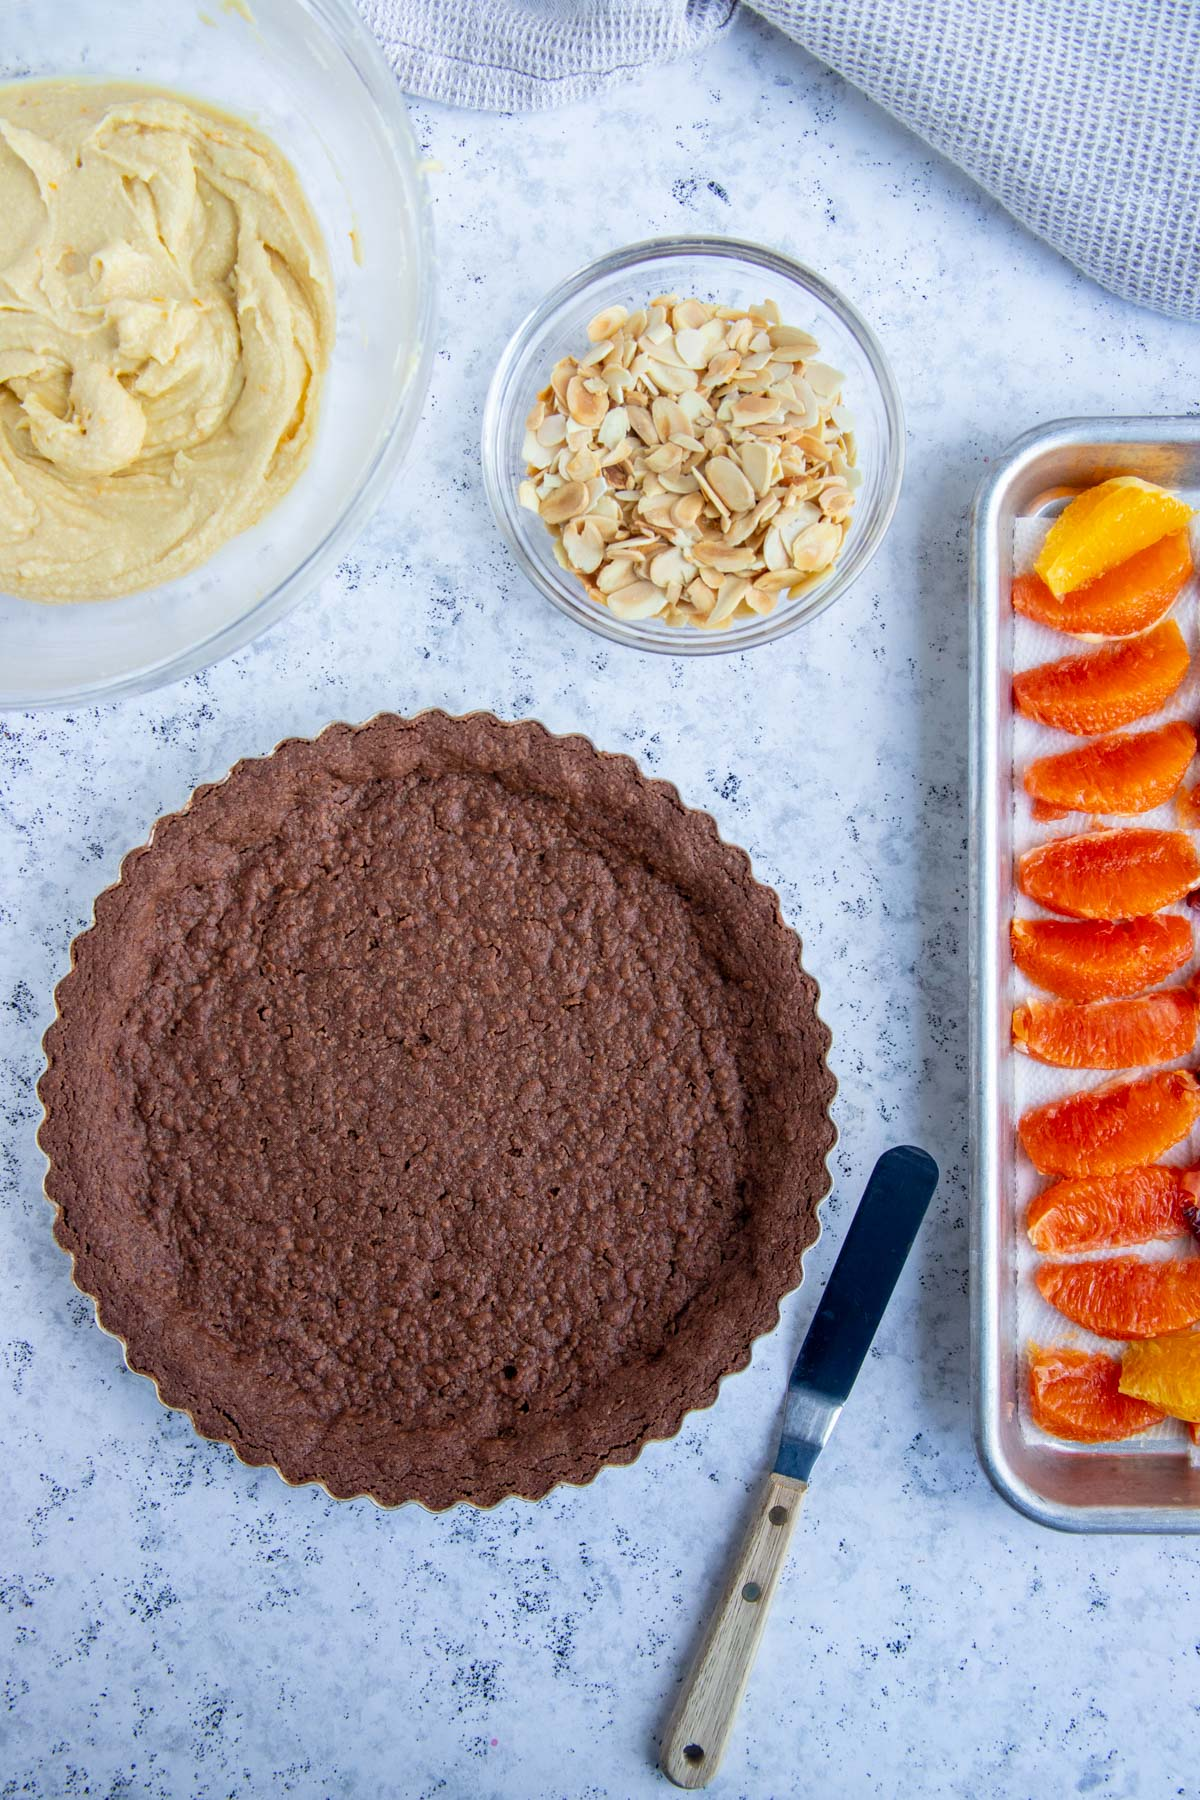 Baked Chocolate Tart, Orange Slices, Toasted Almonds and Almond Cream